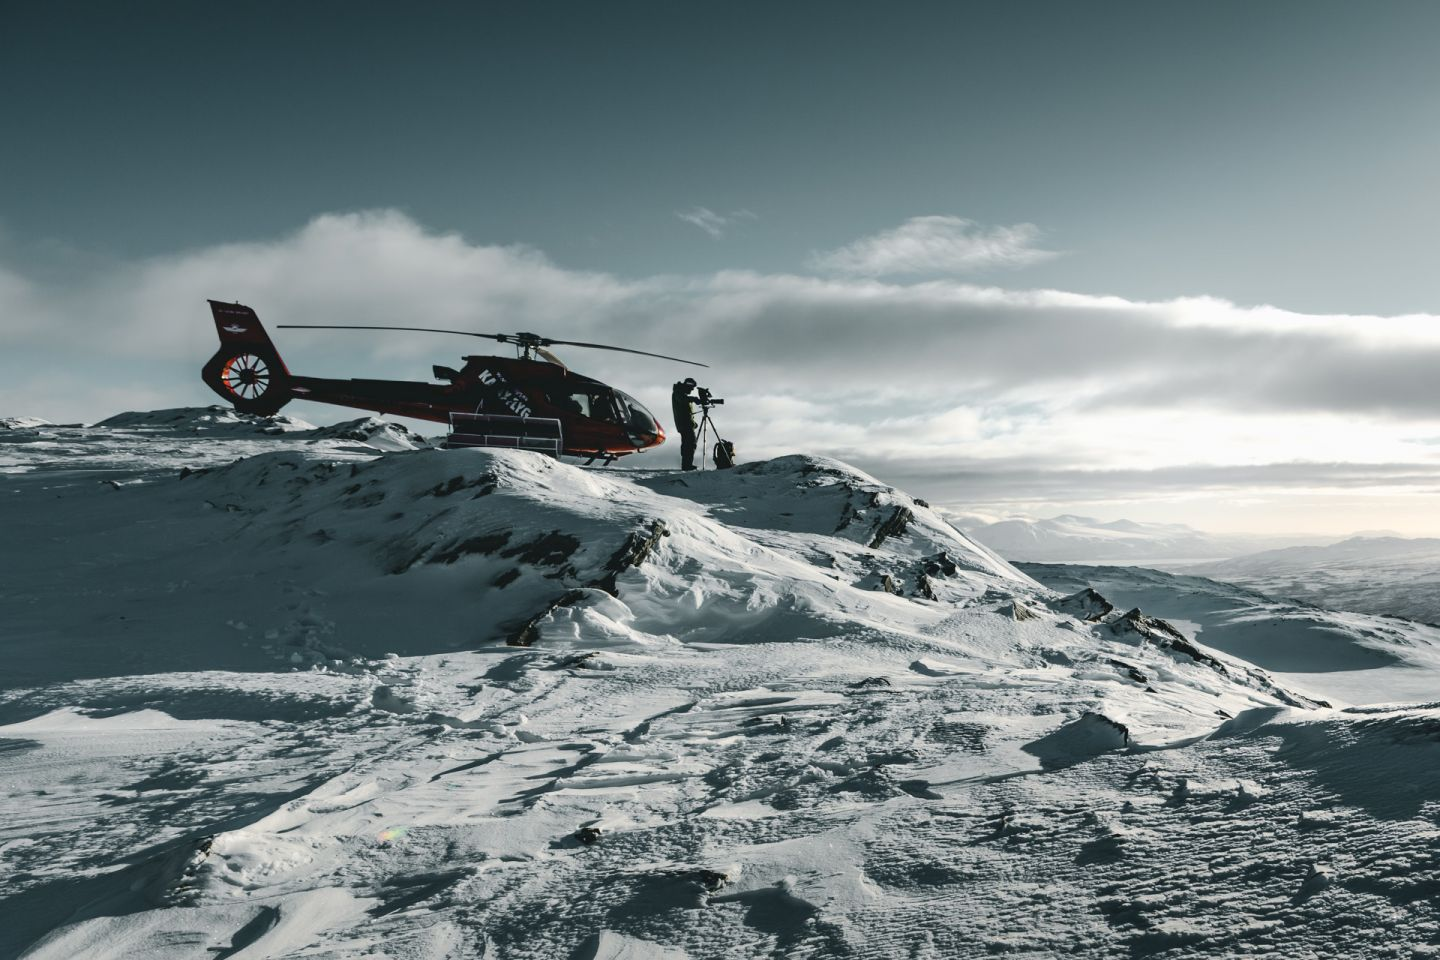 A film-friendly helicopter waits atop a fell in Lapland